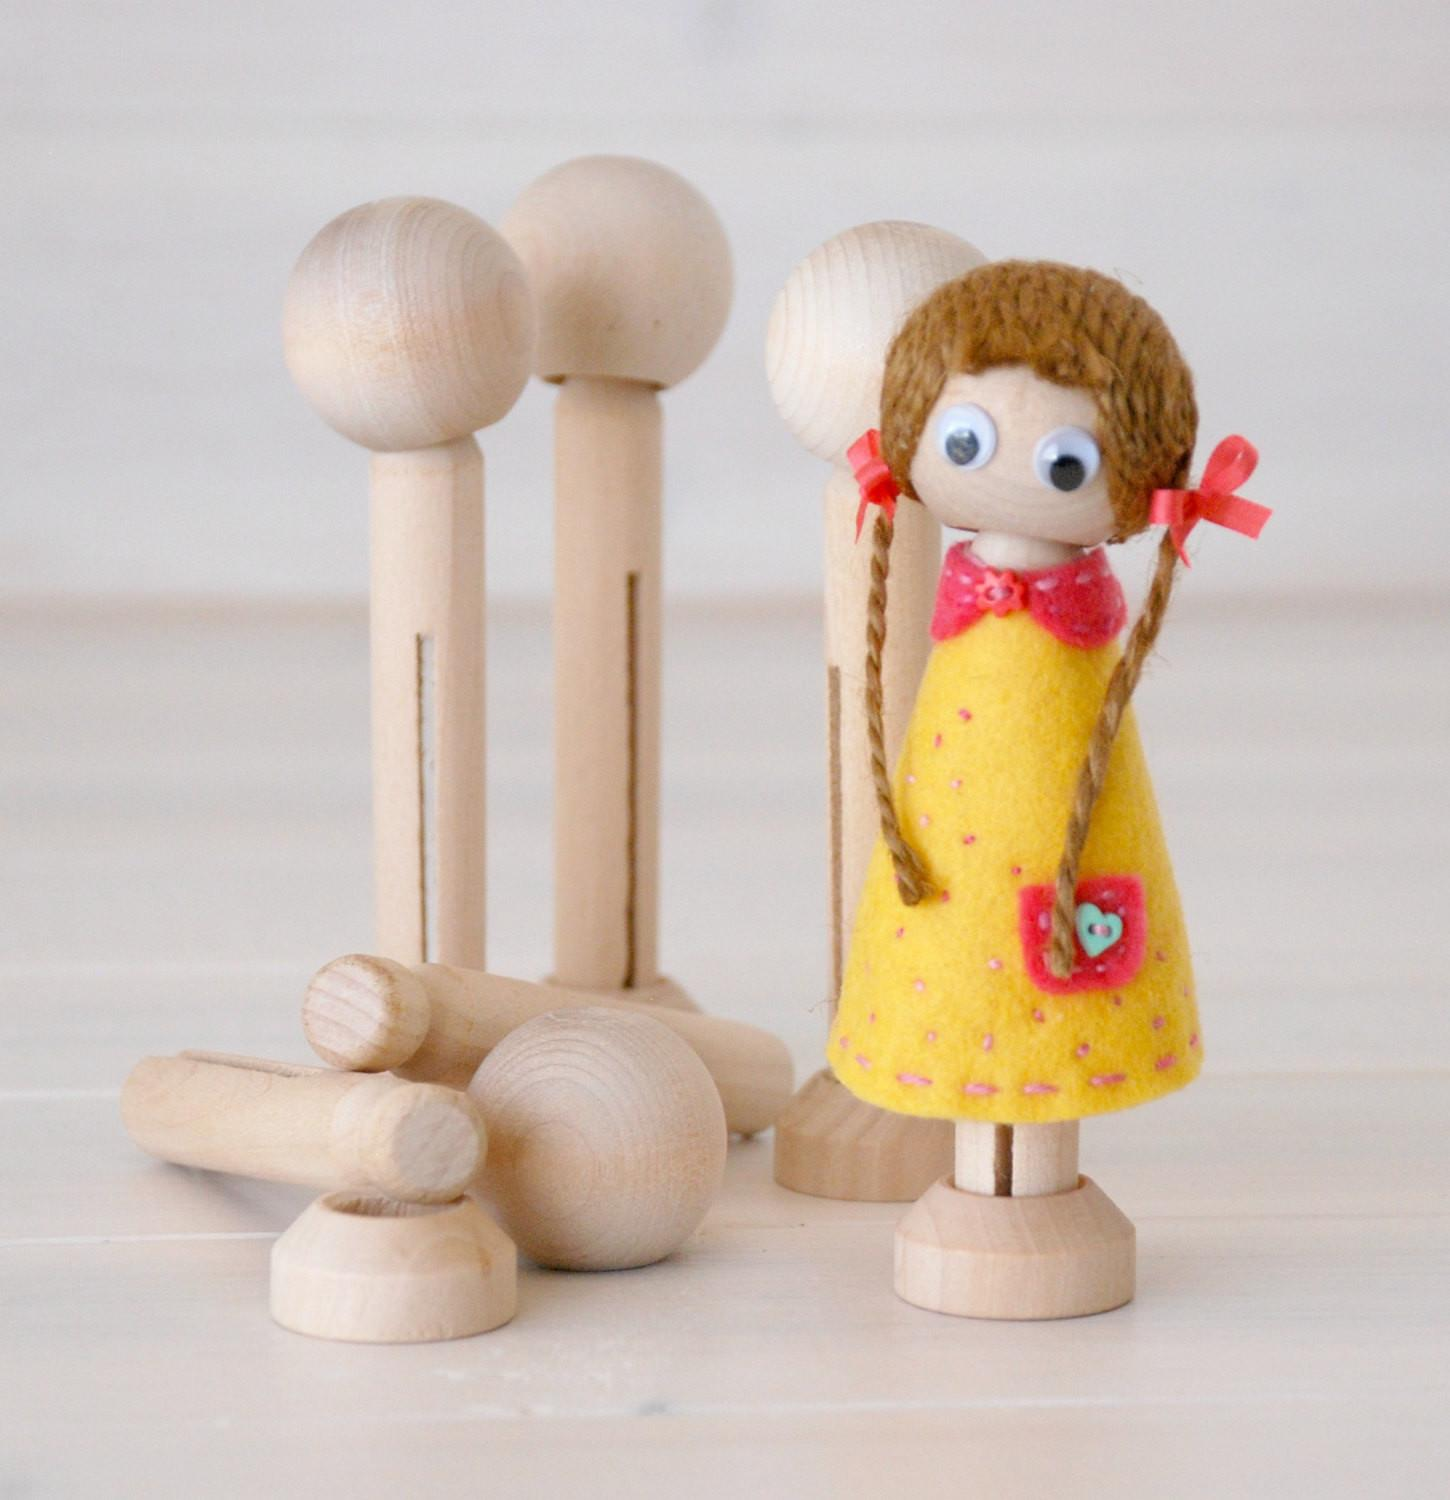 Diy Clothespin Doll Wooden Dolls Clothespins